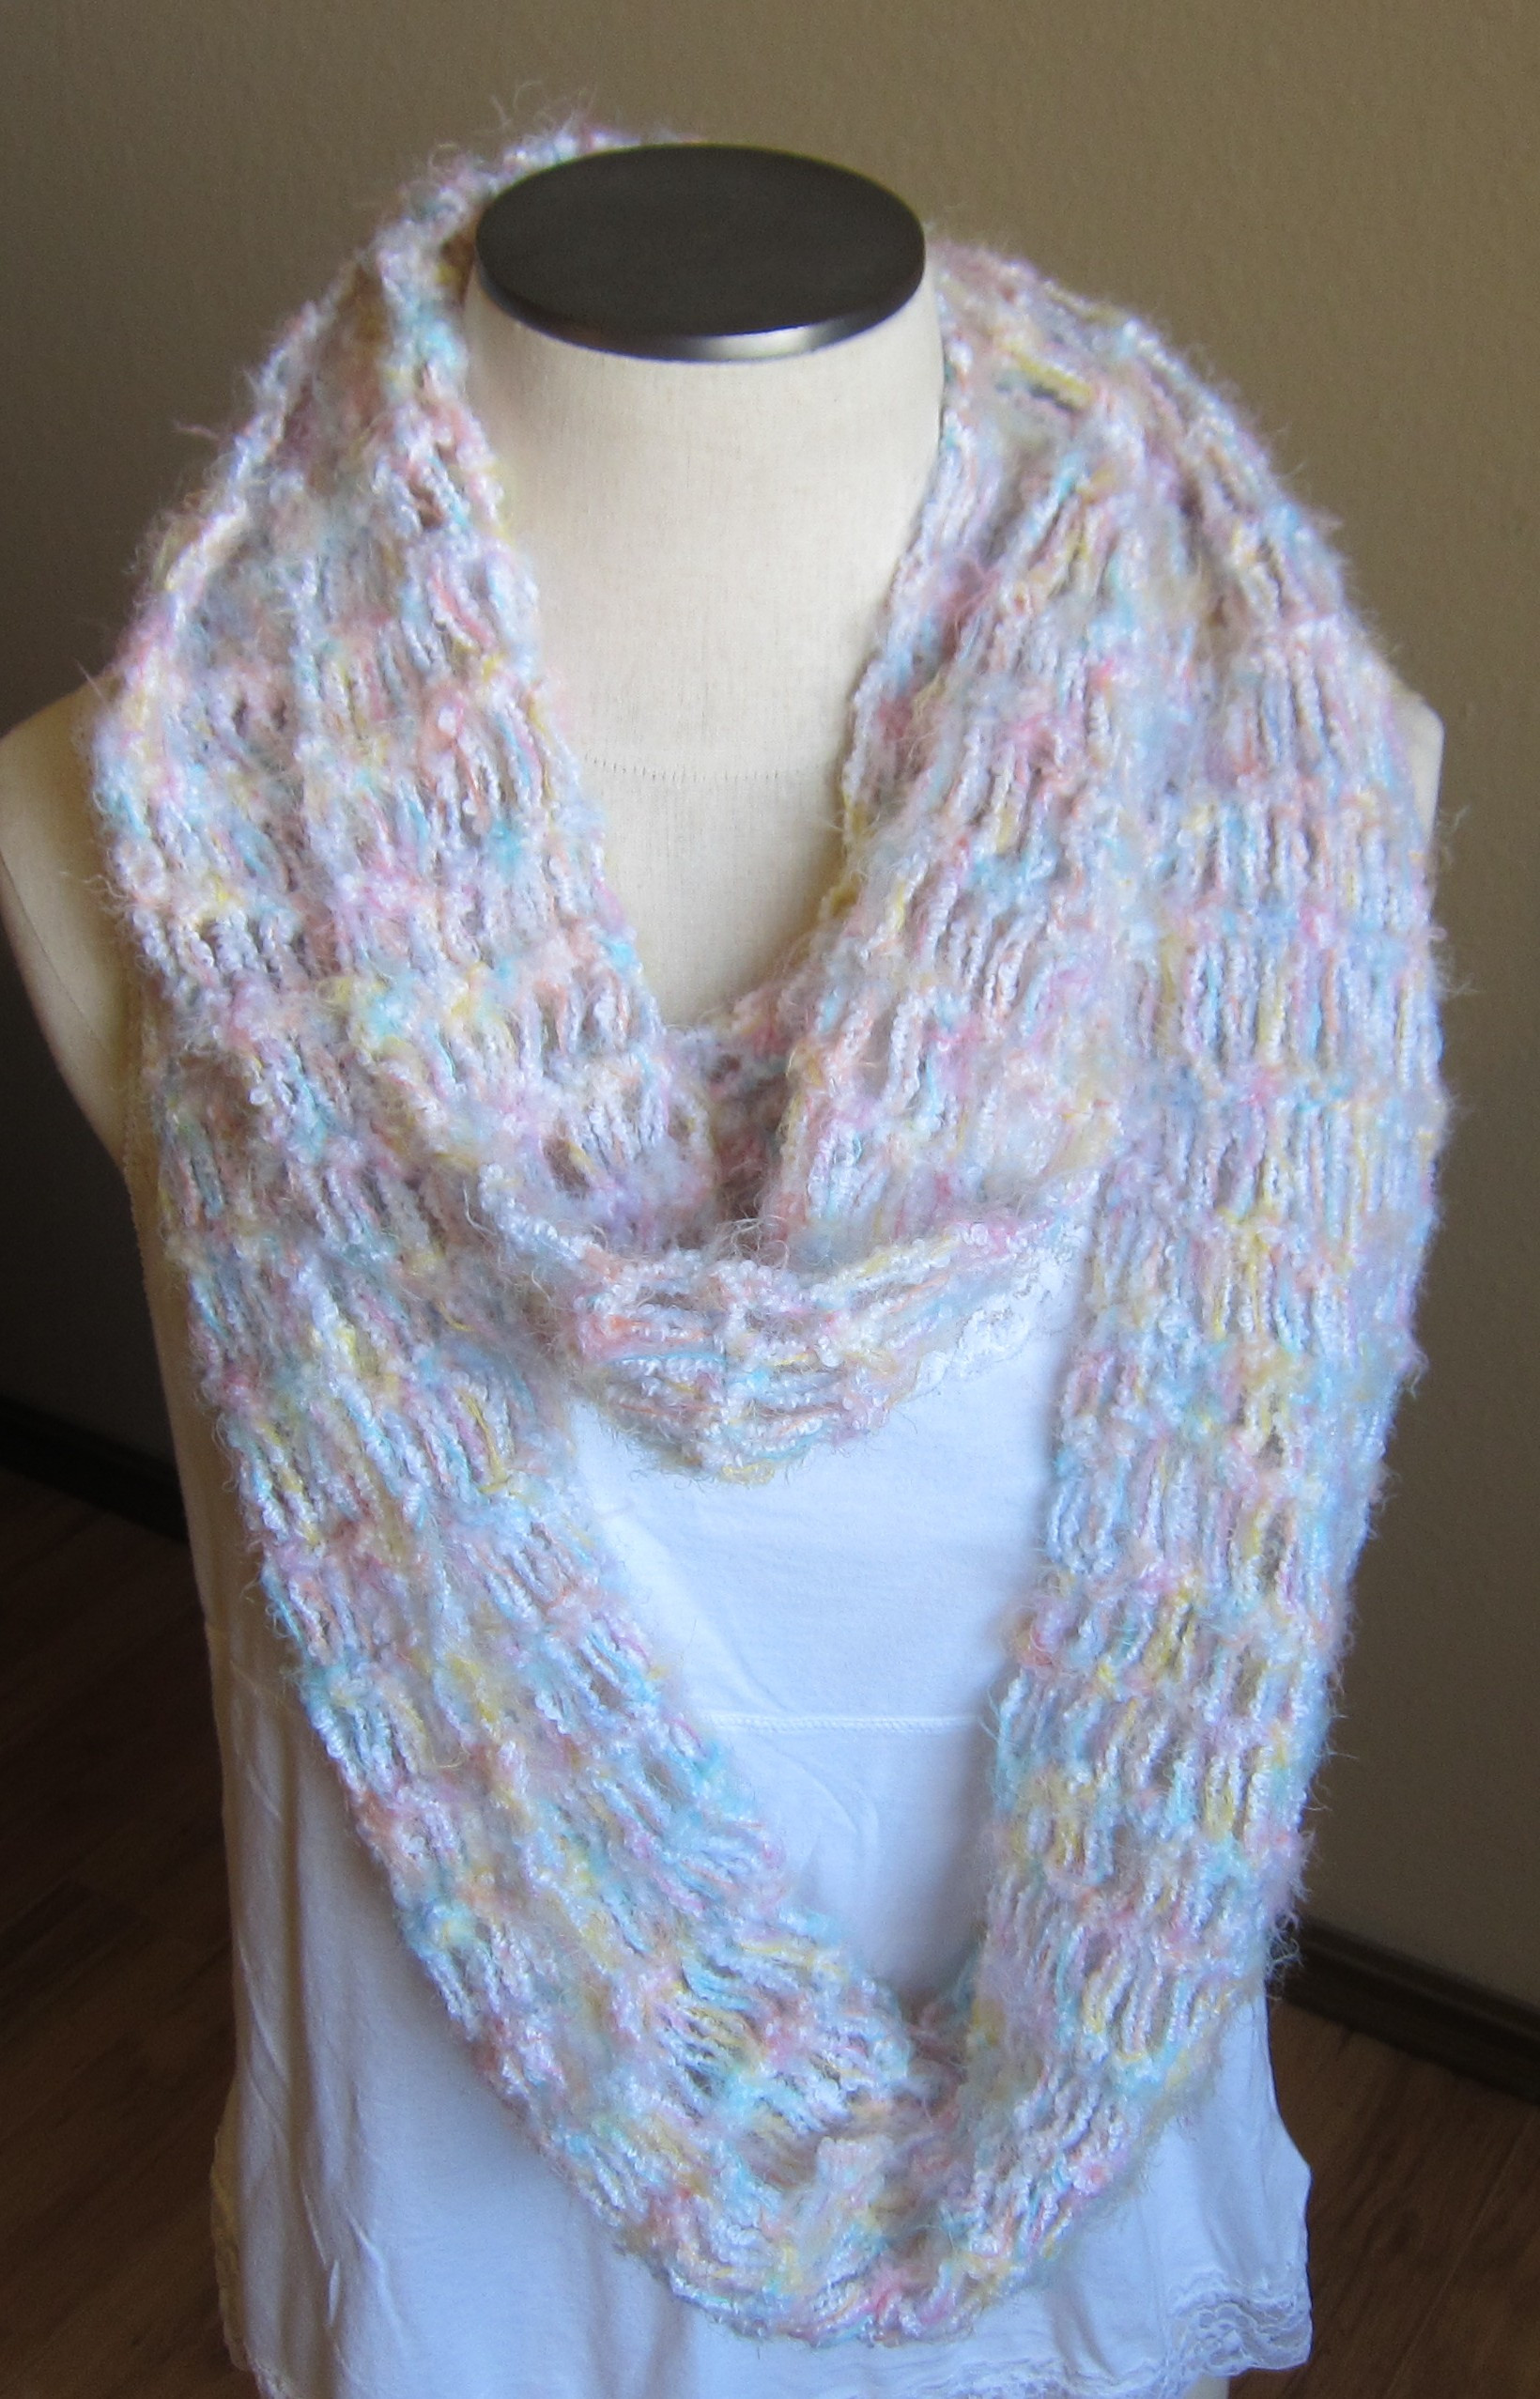 Crochet Cowl Scarf Best Of Crochet Cowl Hooded Scarf Infinity Scarf Made with Of Awesome 42 Pics Crochet Cowl Scarf